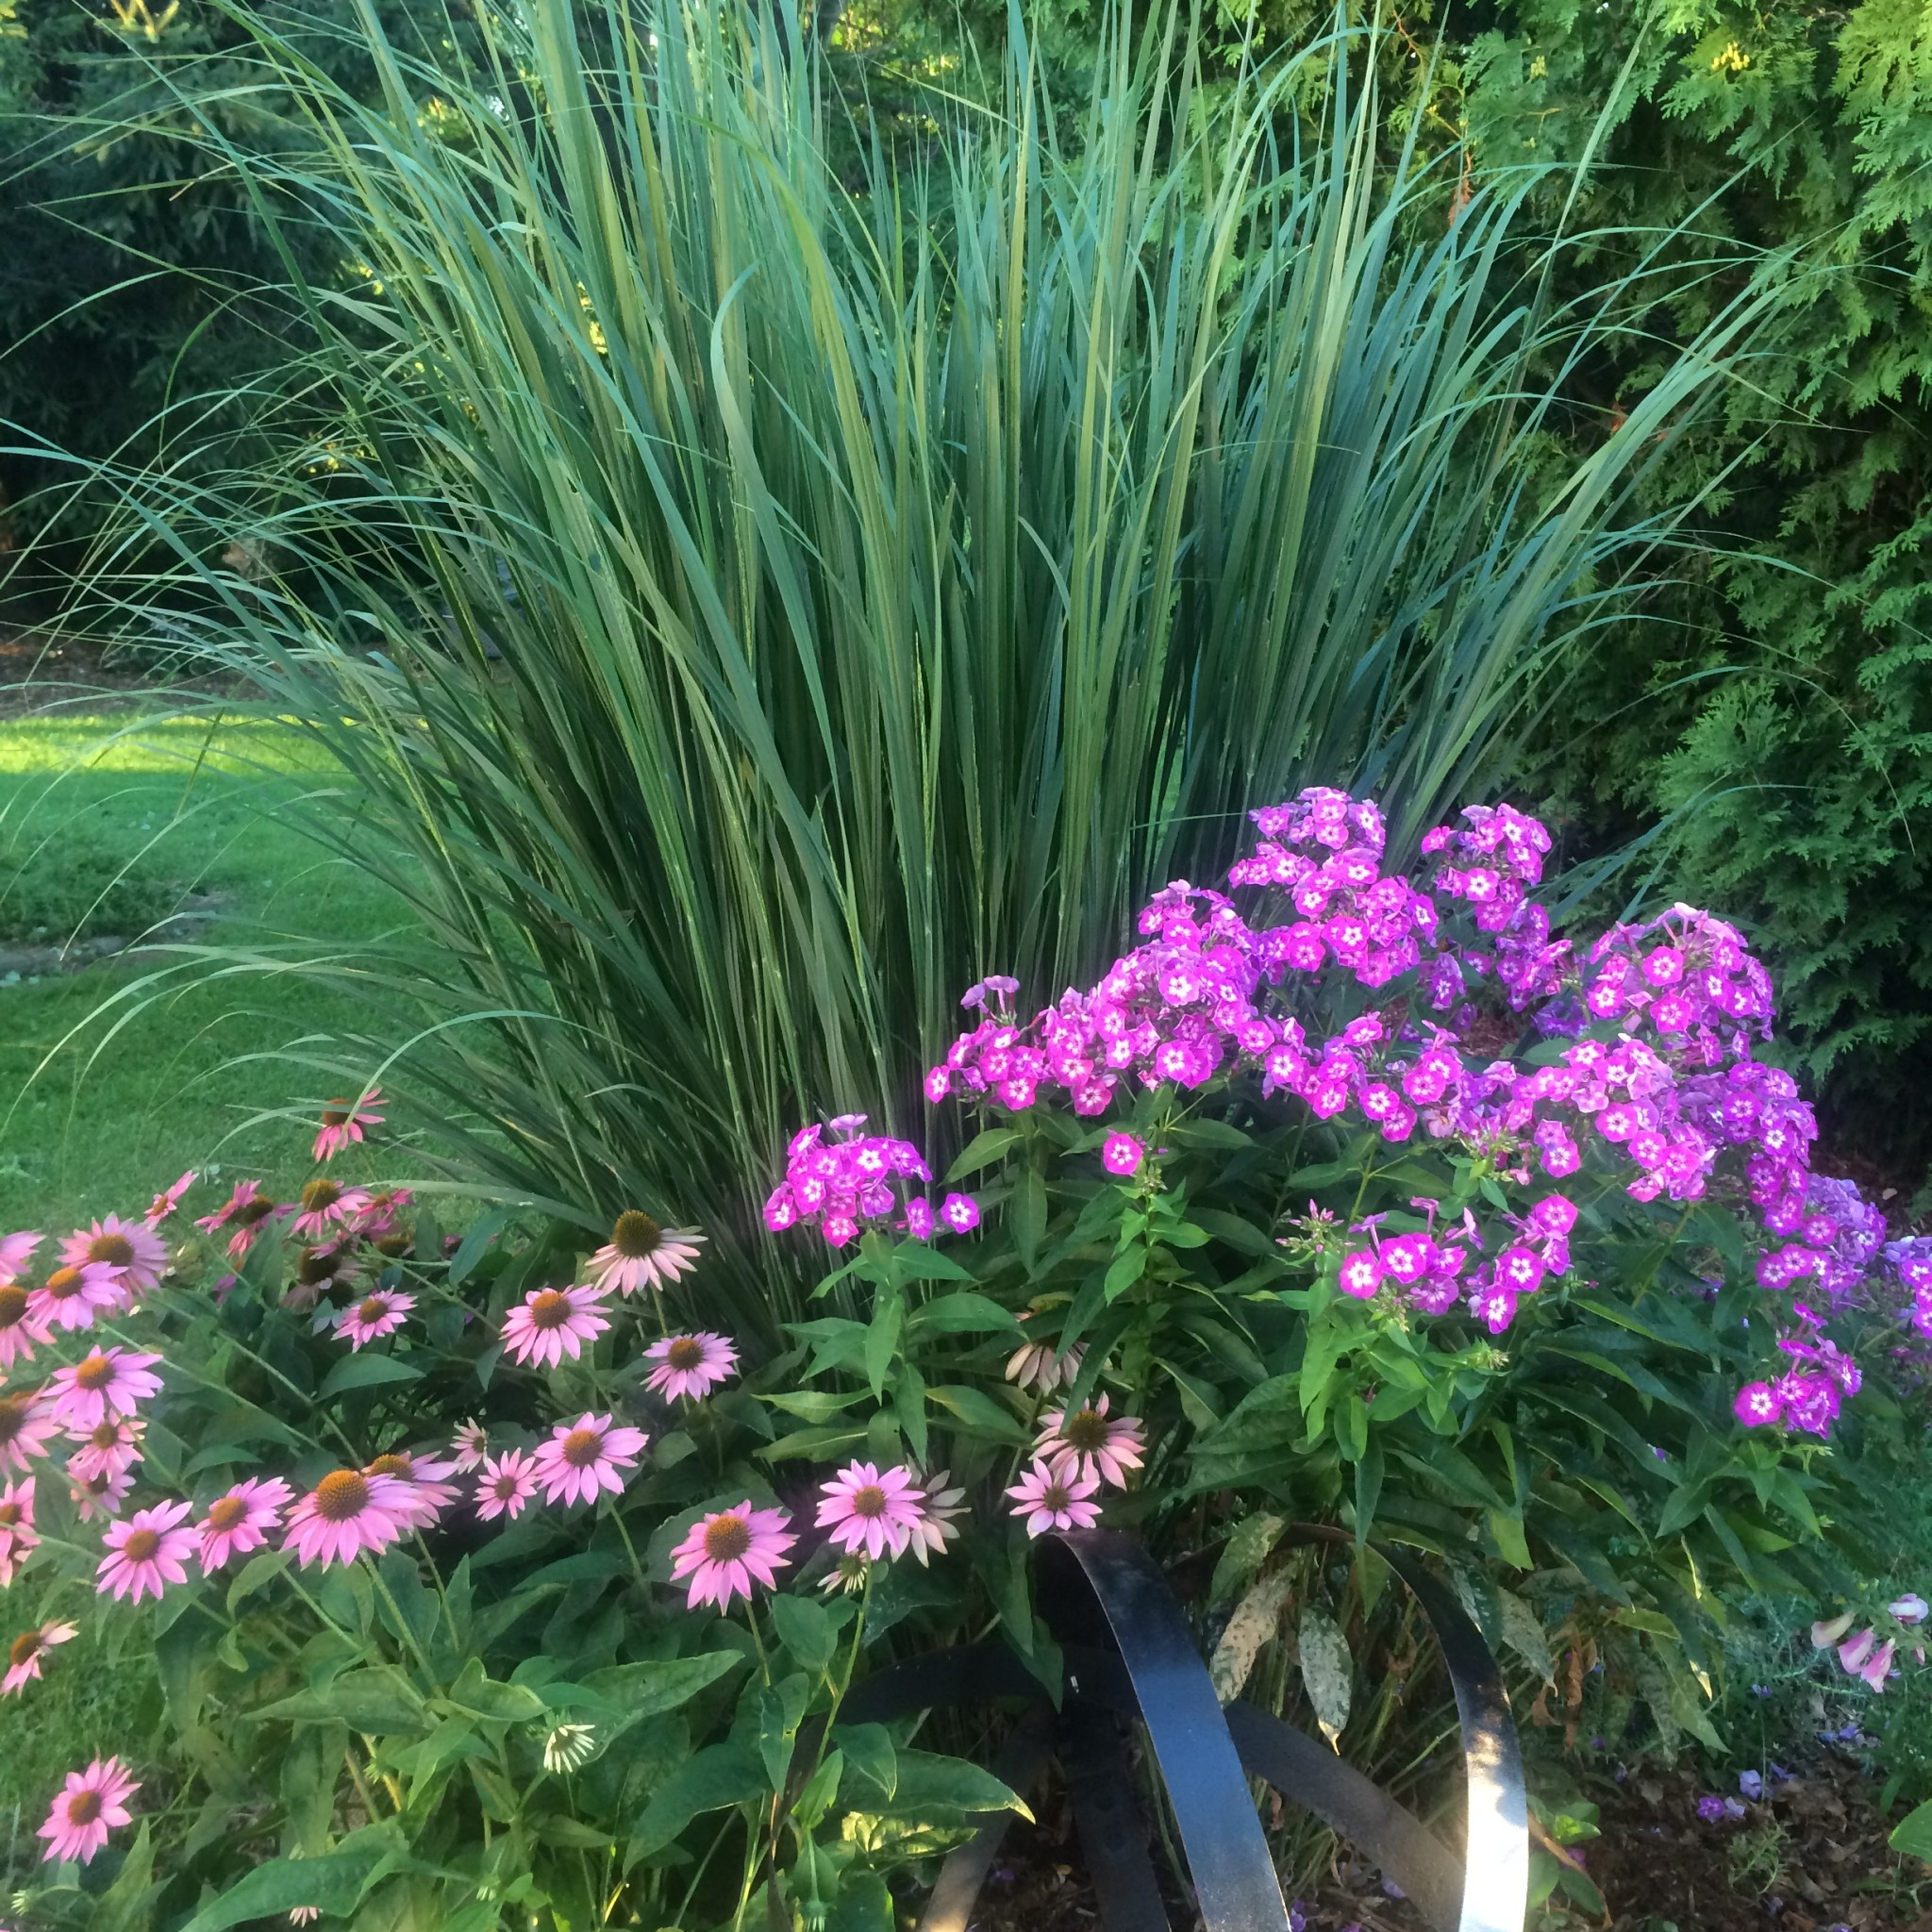 Ornamental grass for shade - Soft Arching Form Is Represented By Fountain Grass While Feather Reed Grass Is Upright And Cylindrical Some Grasses Are Shade Tolerant Like The Golden